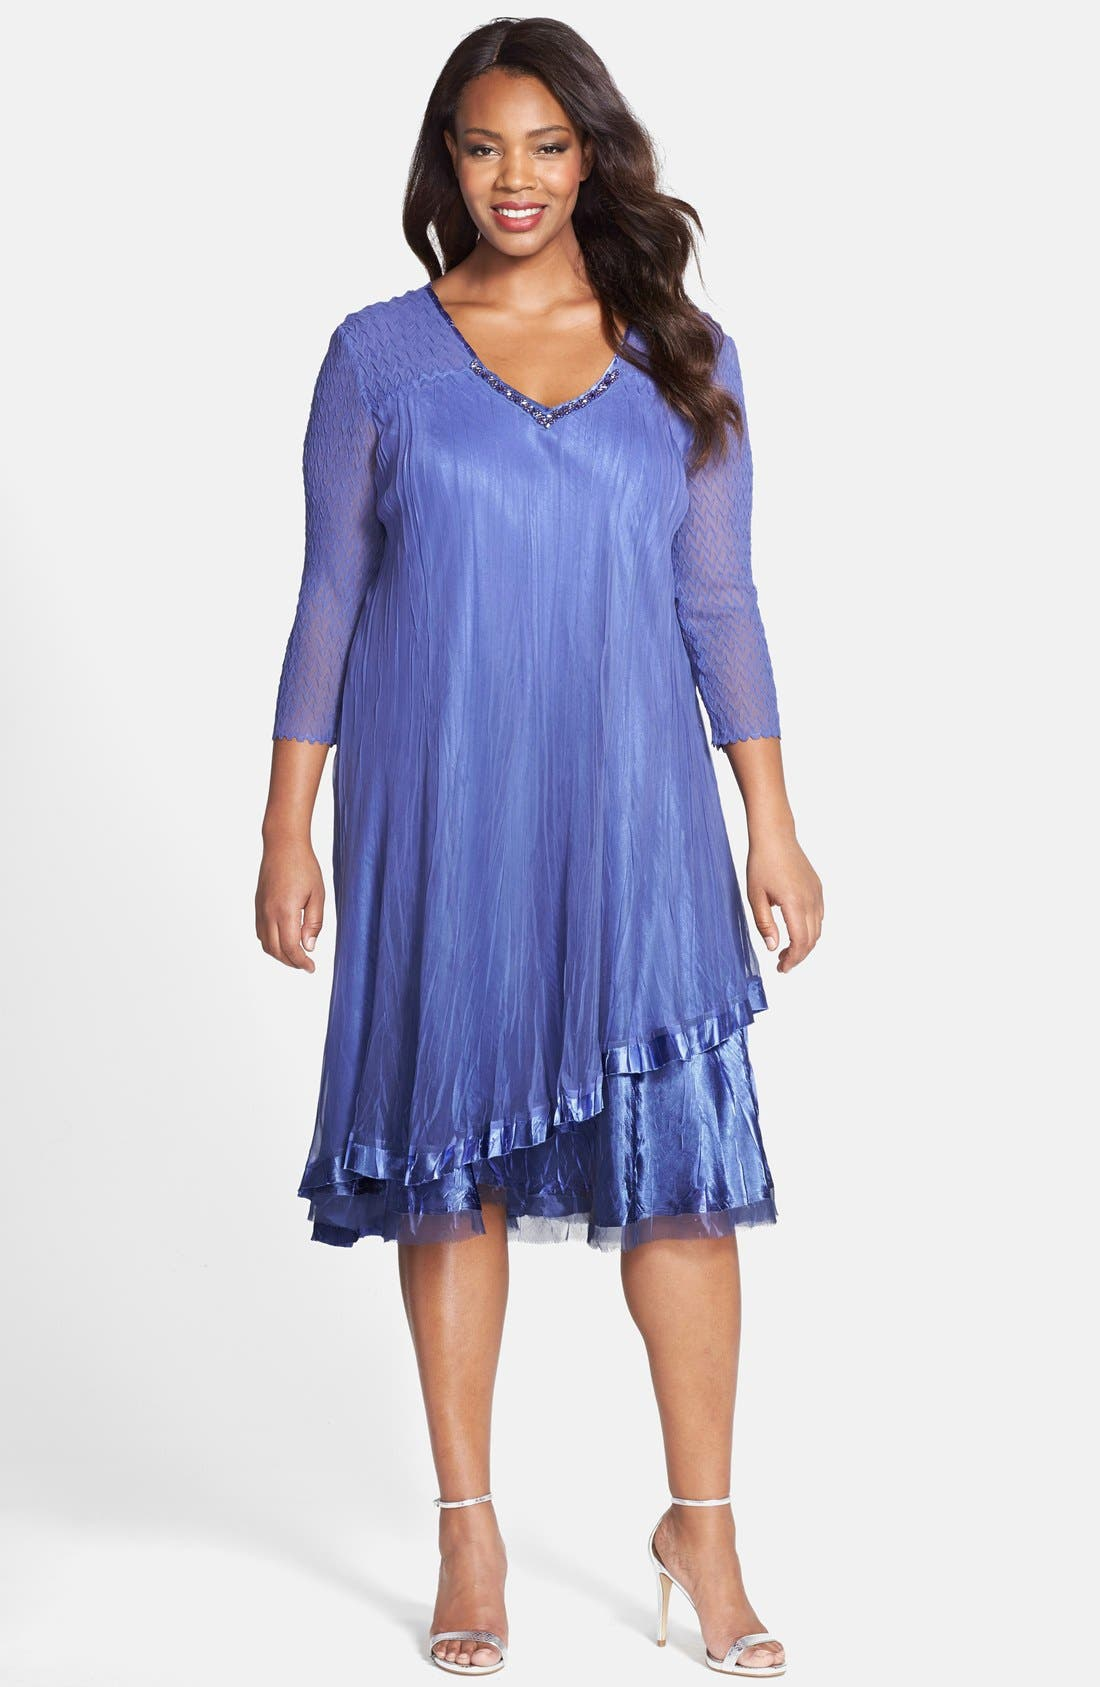 Having the most exquisite models of Chiffon Bridesmaid Dresses we offer one a full and complete line and style of beautiful, gracious designed and accessorized bridesmaid dresses which will perfectly for the big formal day of a friend's wedding before many juniors and guests.